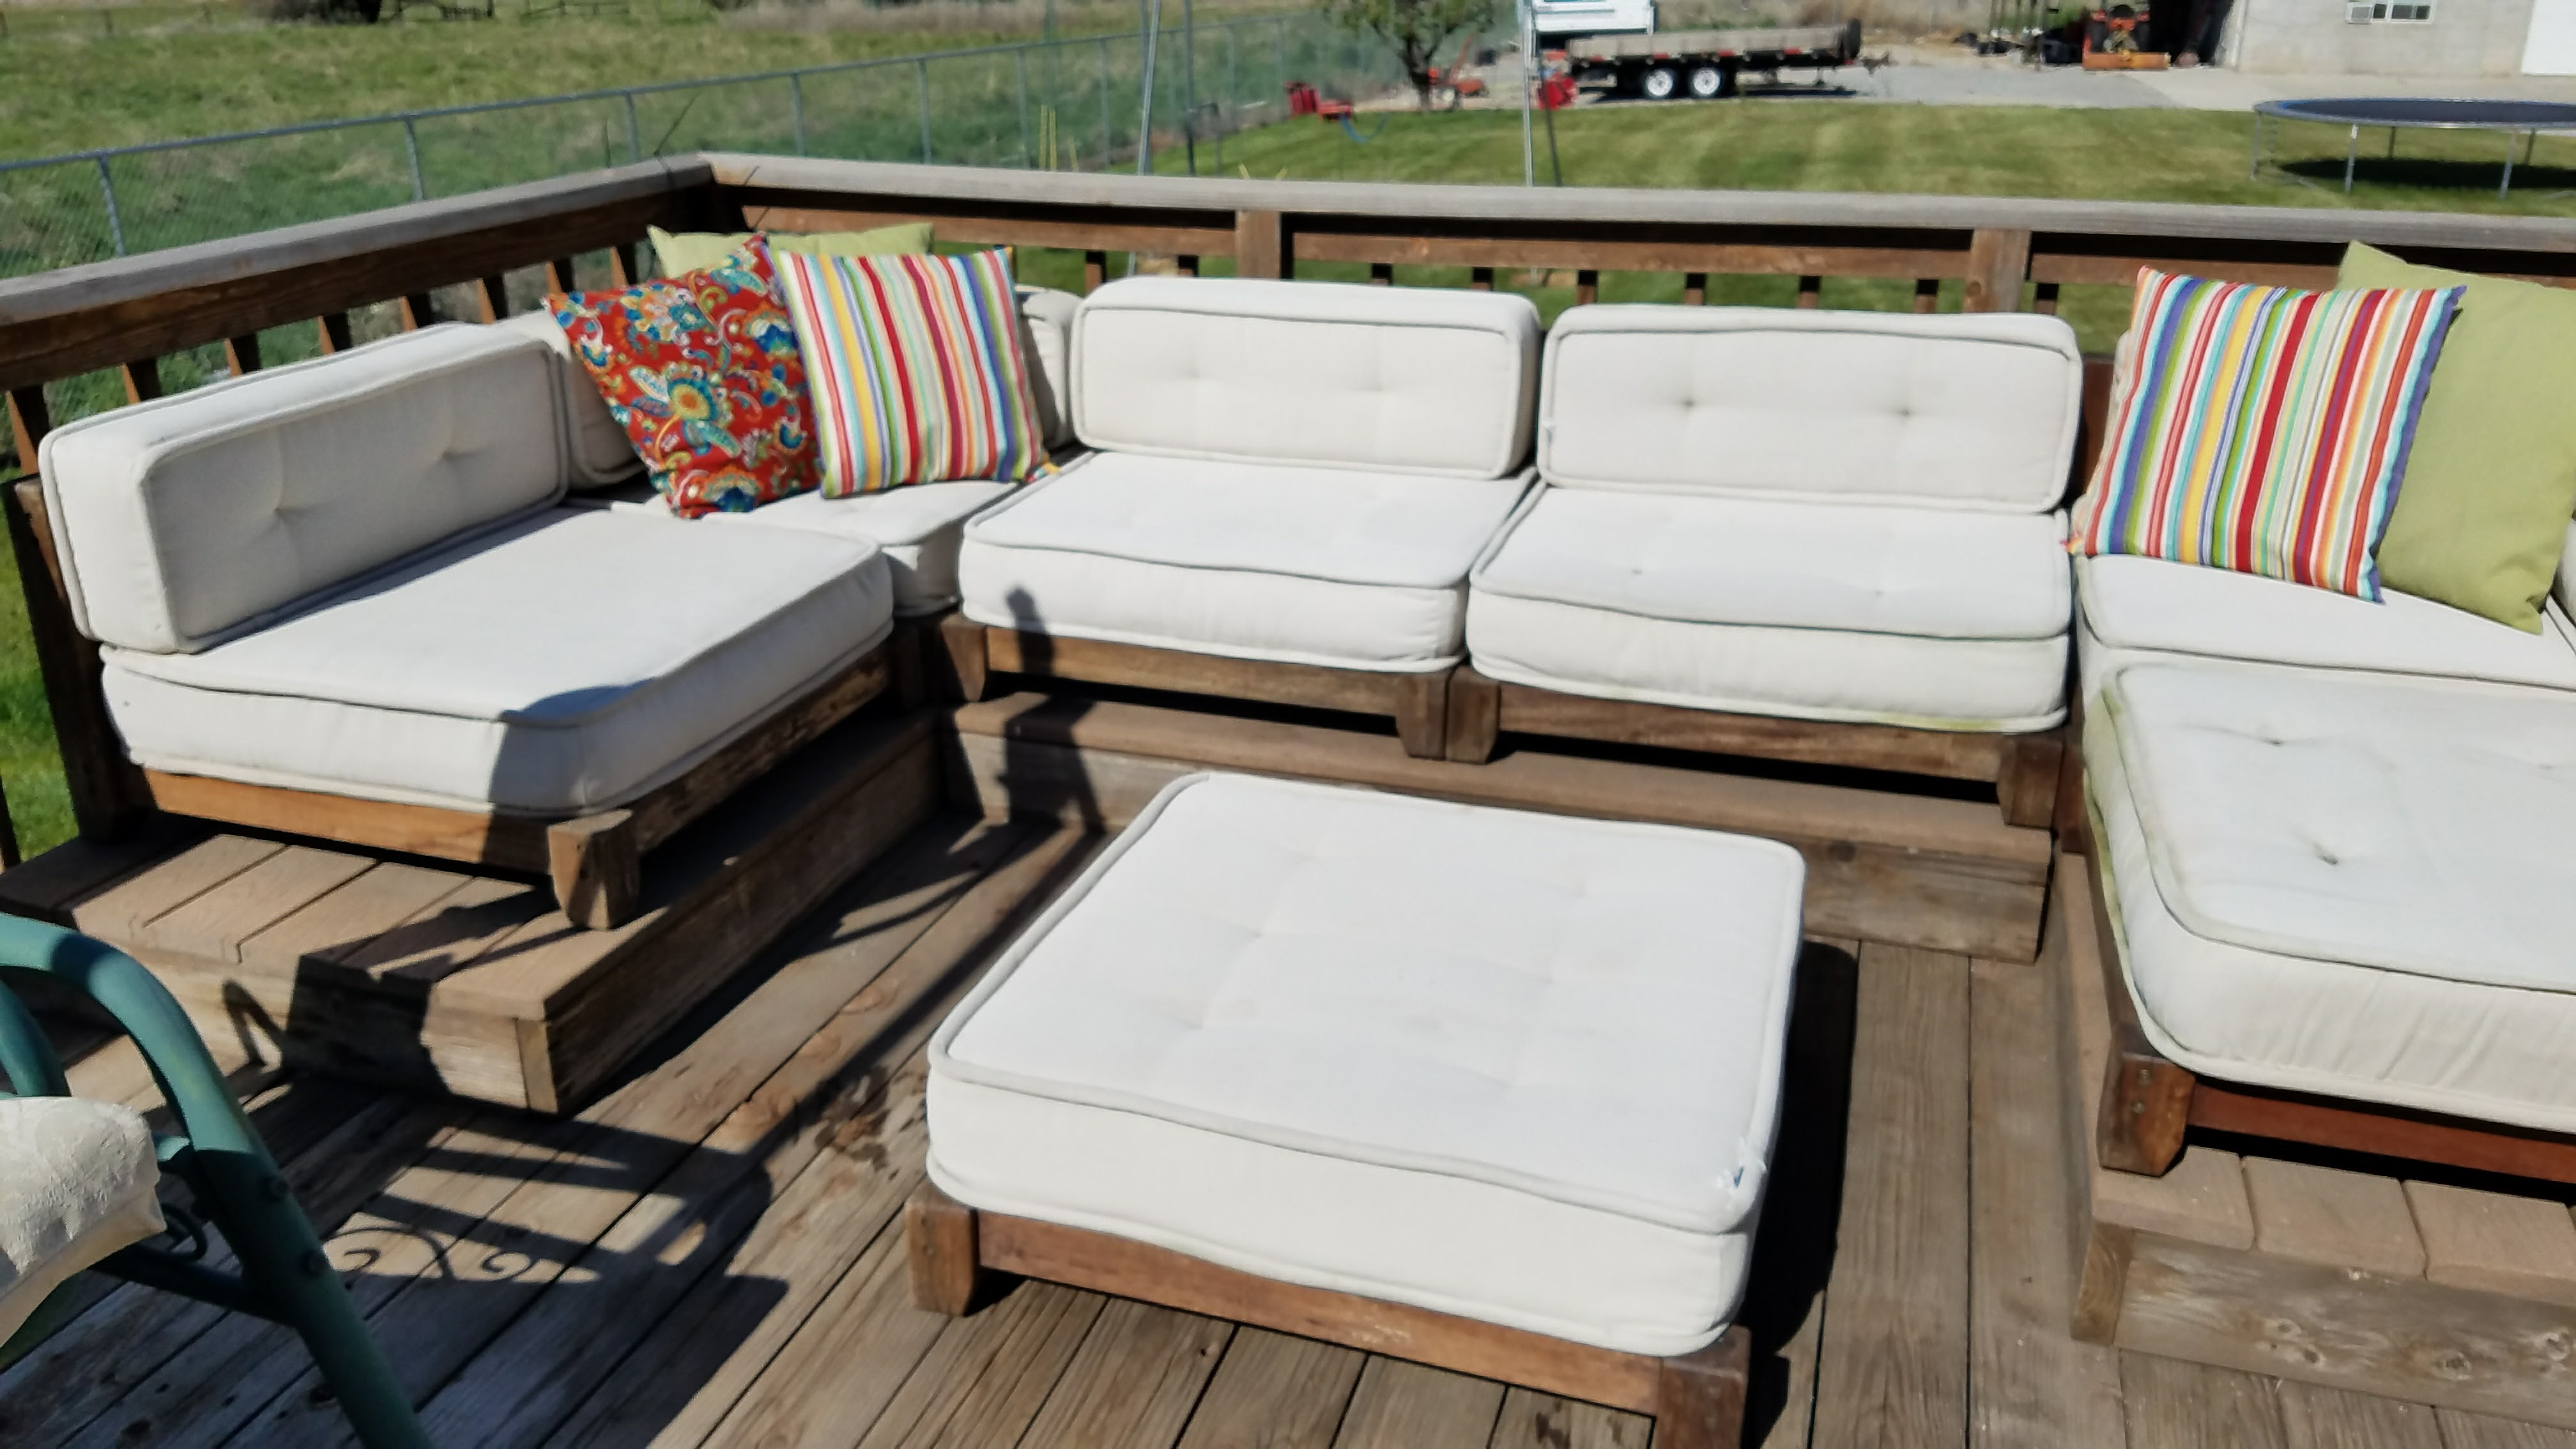 The patio furniture assembled with clean white cushions.